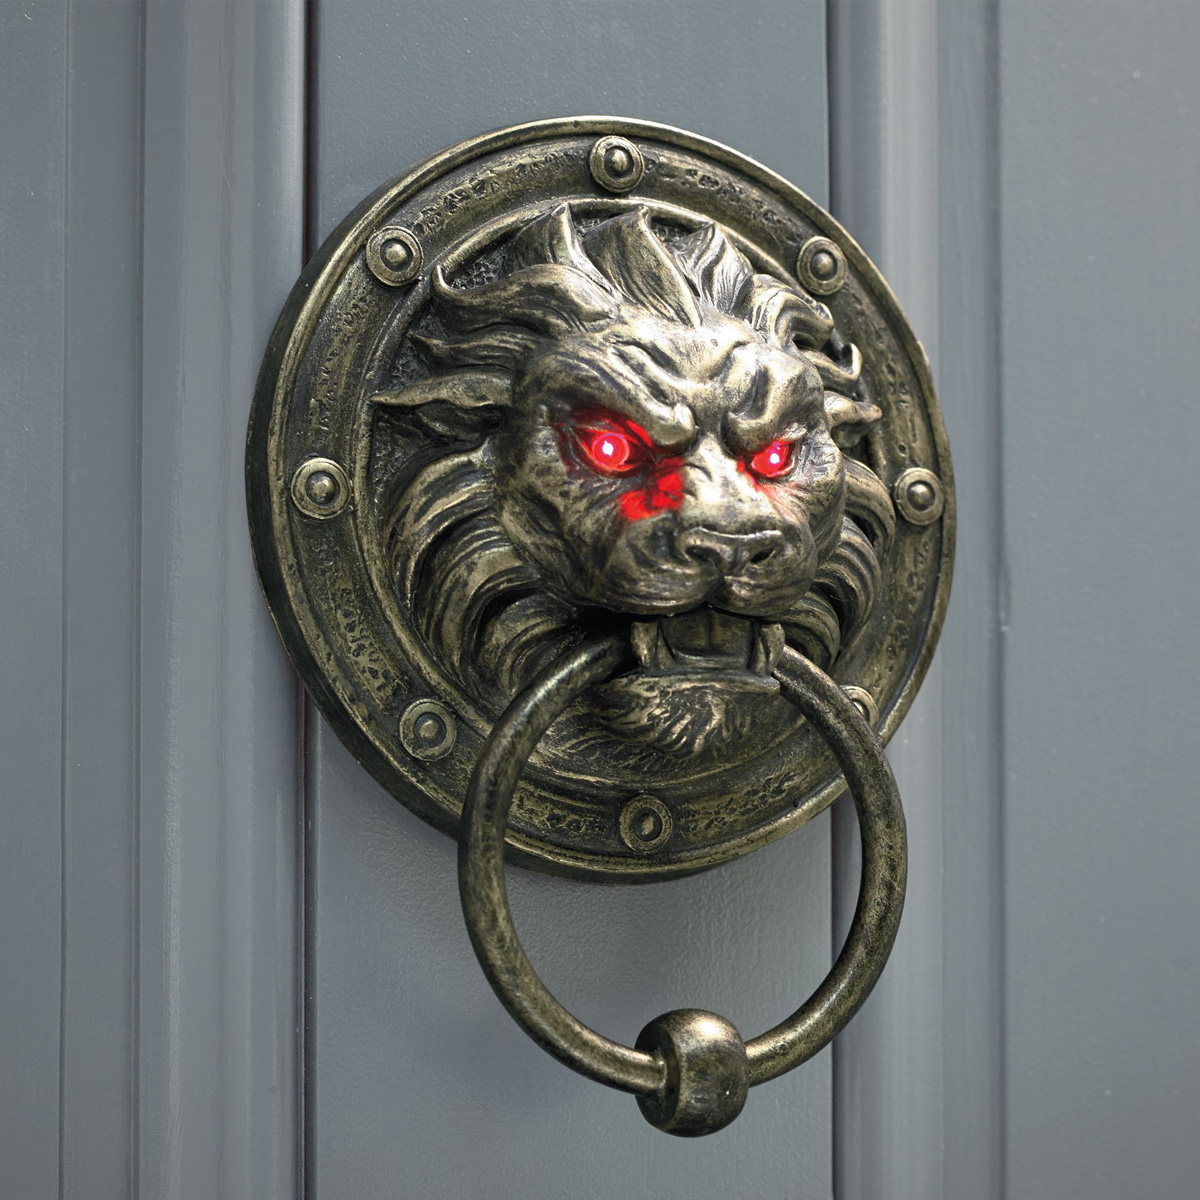 Creepy Lion Door Knocker WIth Glowing Eyes & Creepy Lion Door Knocker WIth Glowing Eyes - The Green Head Pezcame.Com